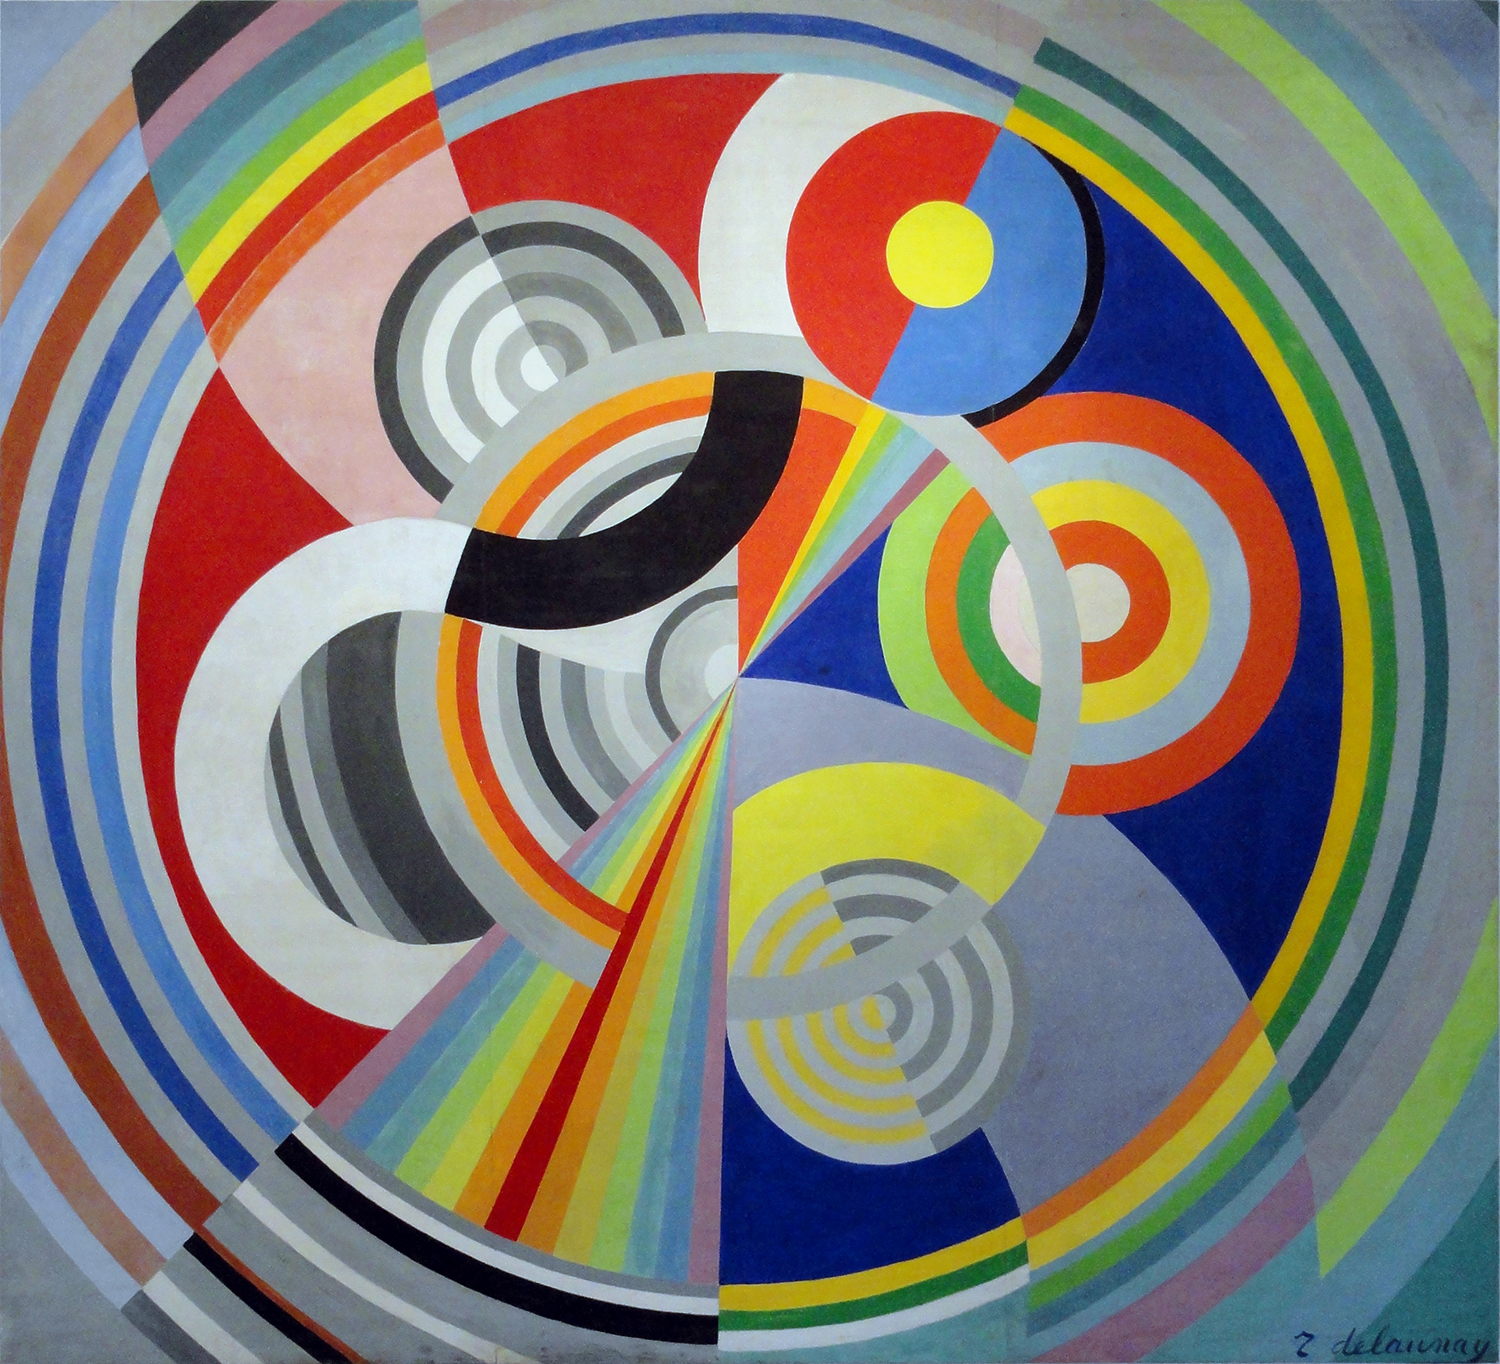 """Rythme No. 1"" by Robert Delaunay, 1938"